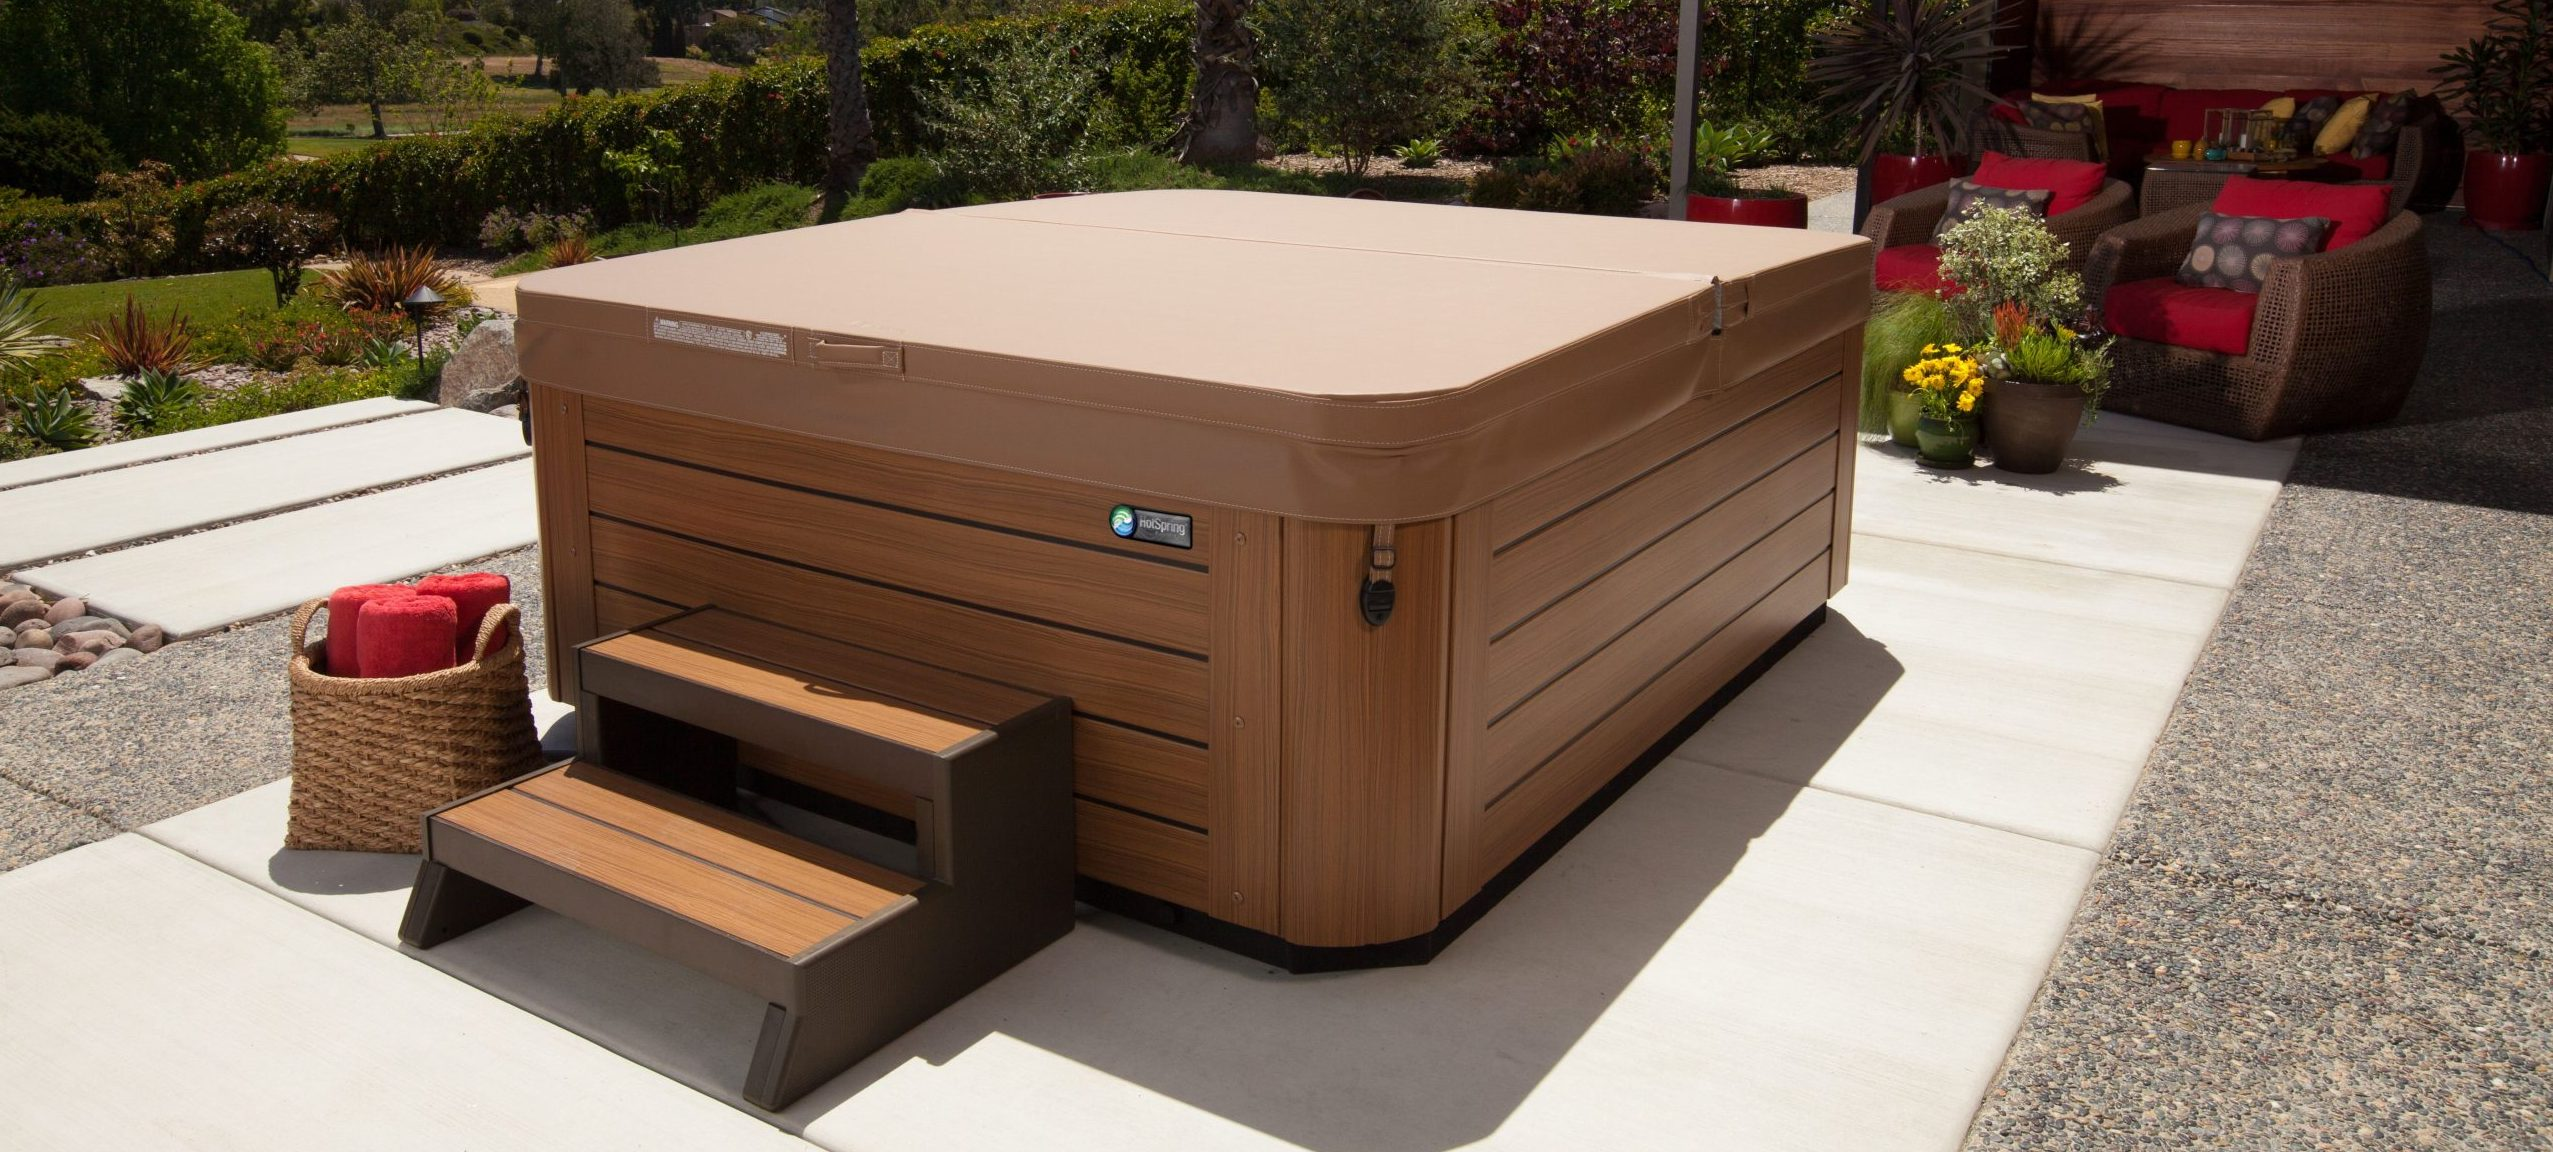 Do I Have to Have a Fence Around My Hot Tub?